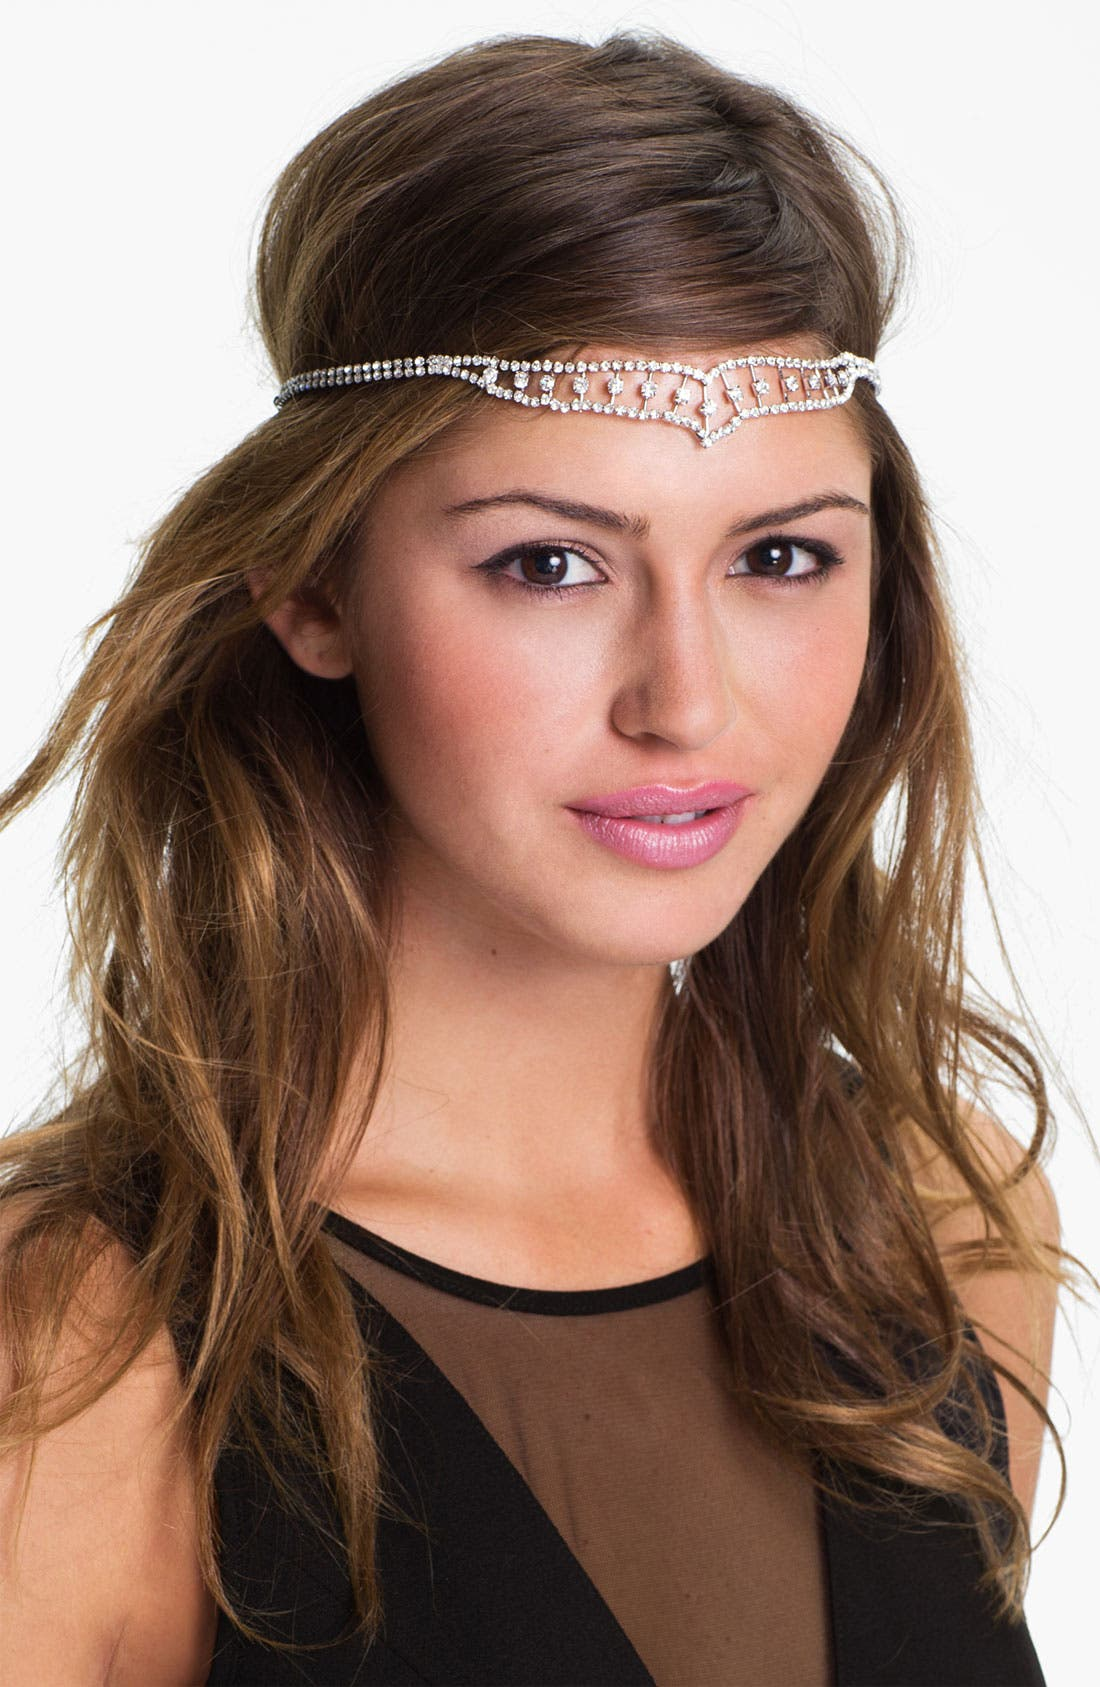 Alternate Image 1 Selected - BP Tiara Headband